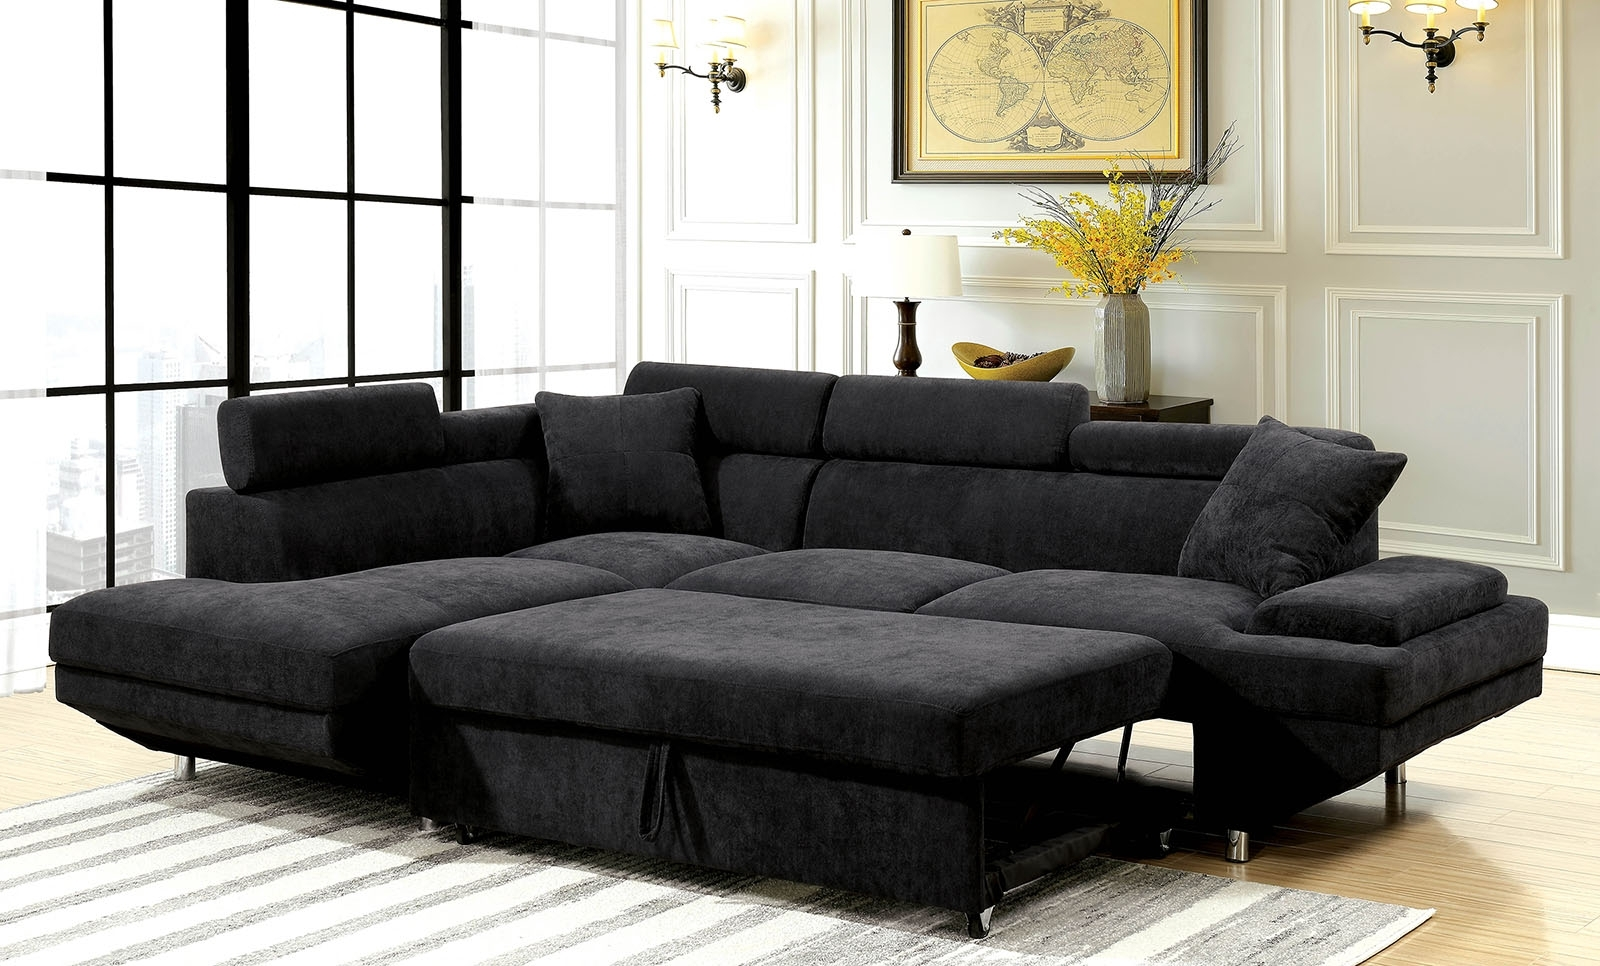 Well Known Adjustable Sectional Sofas With Queen Bed In Foreman Black Flannelette Fabric Sectional With Pull Out Bed (View 5 of 15)